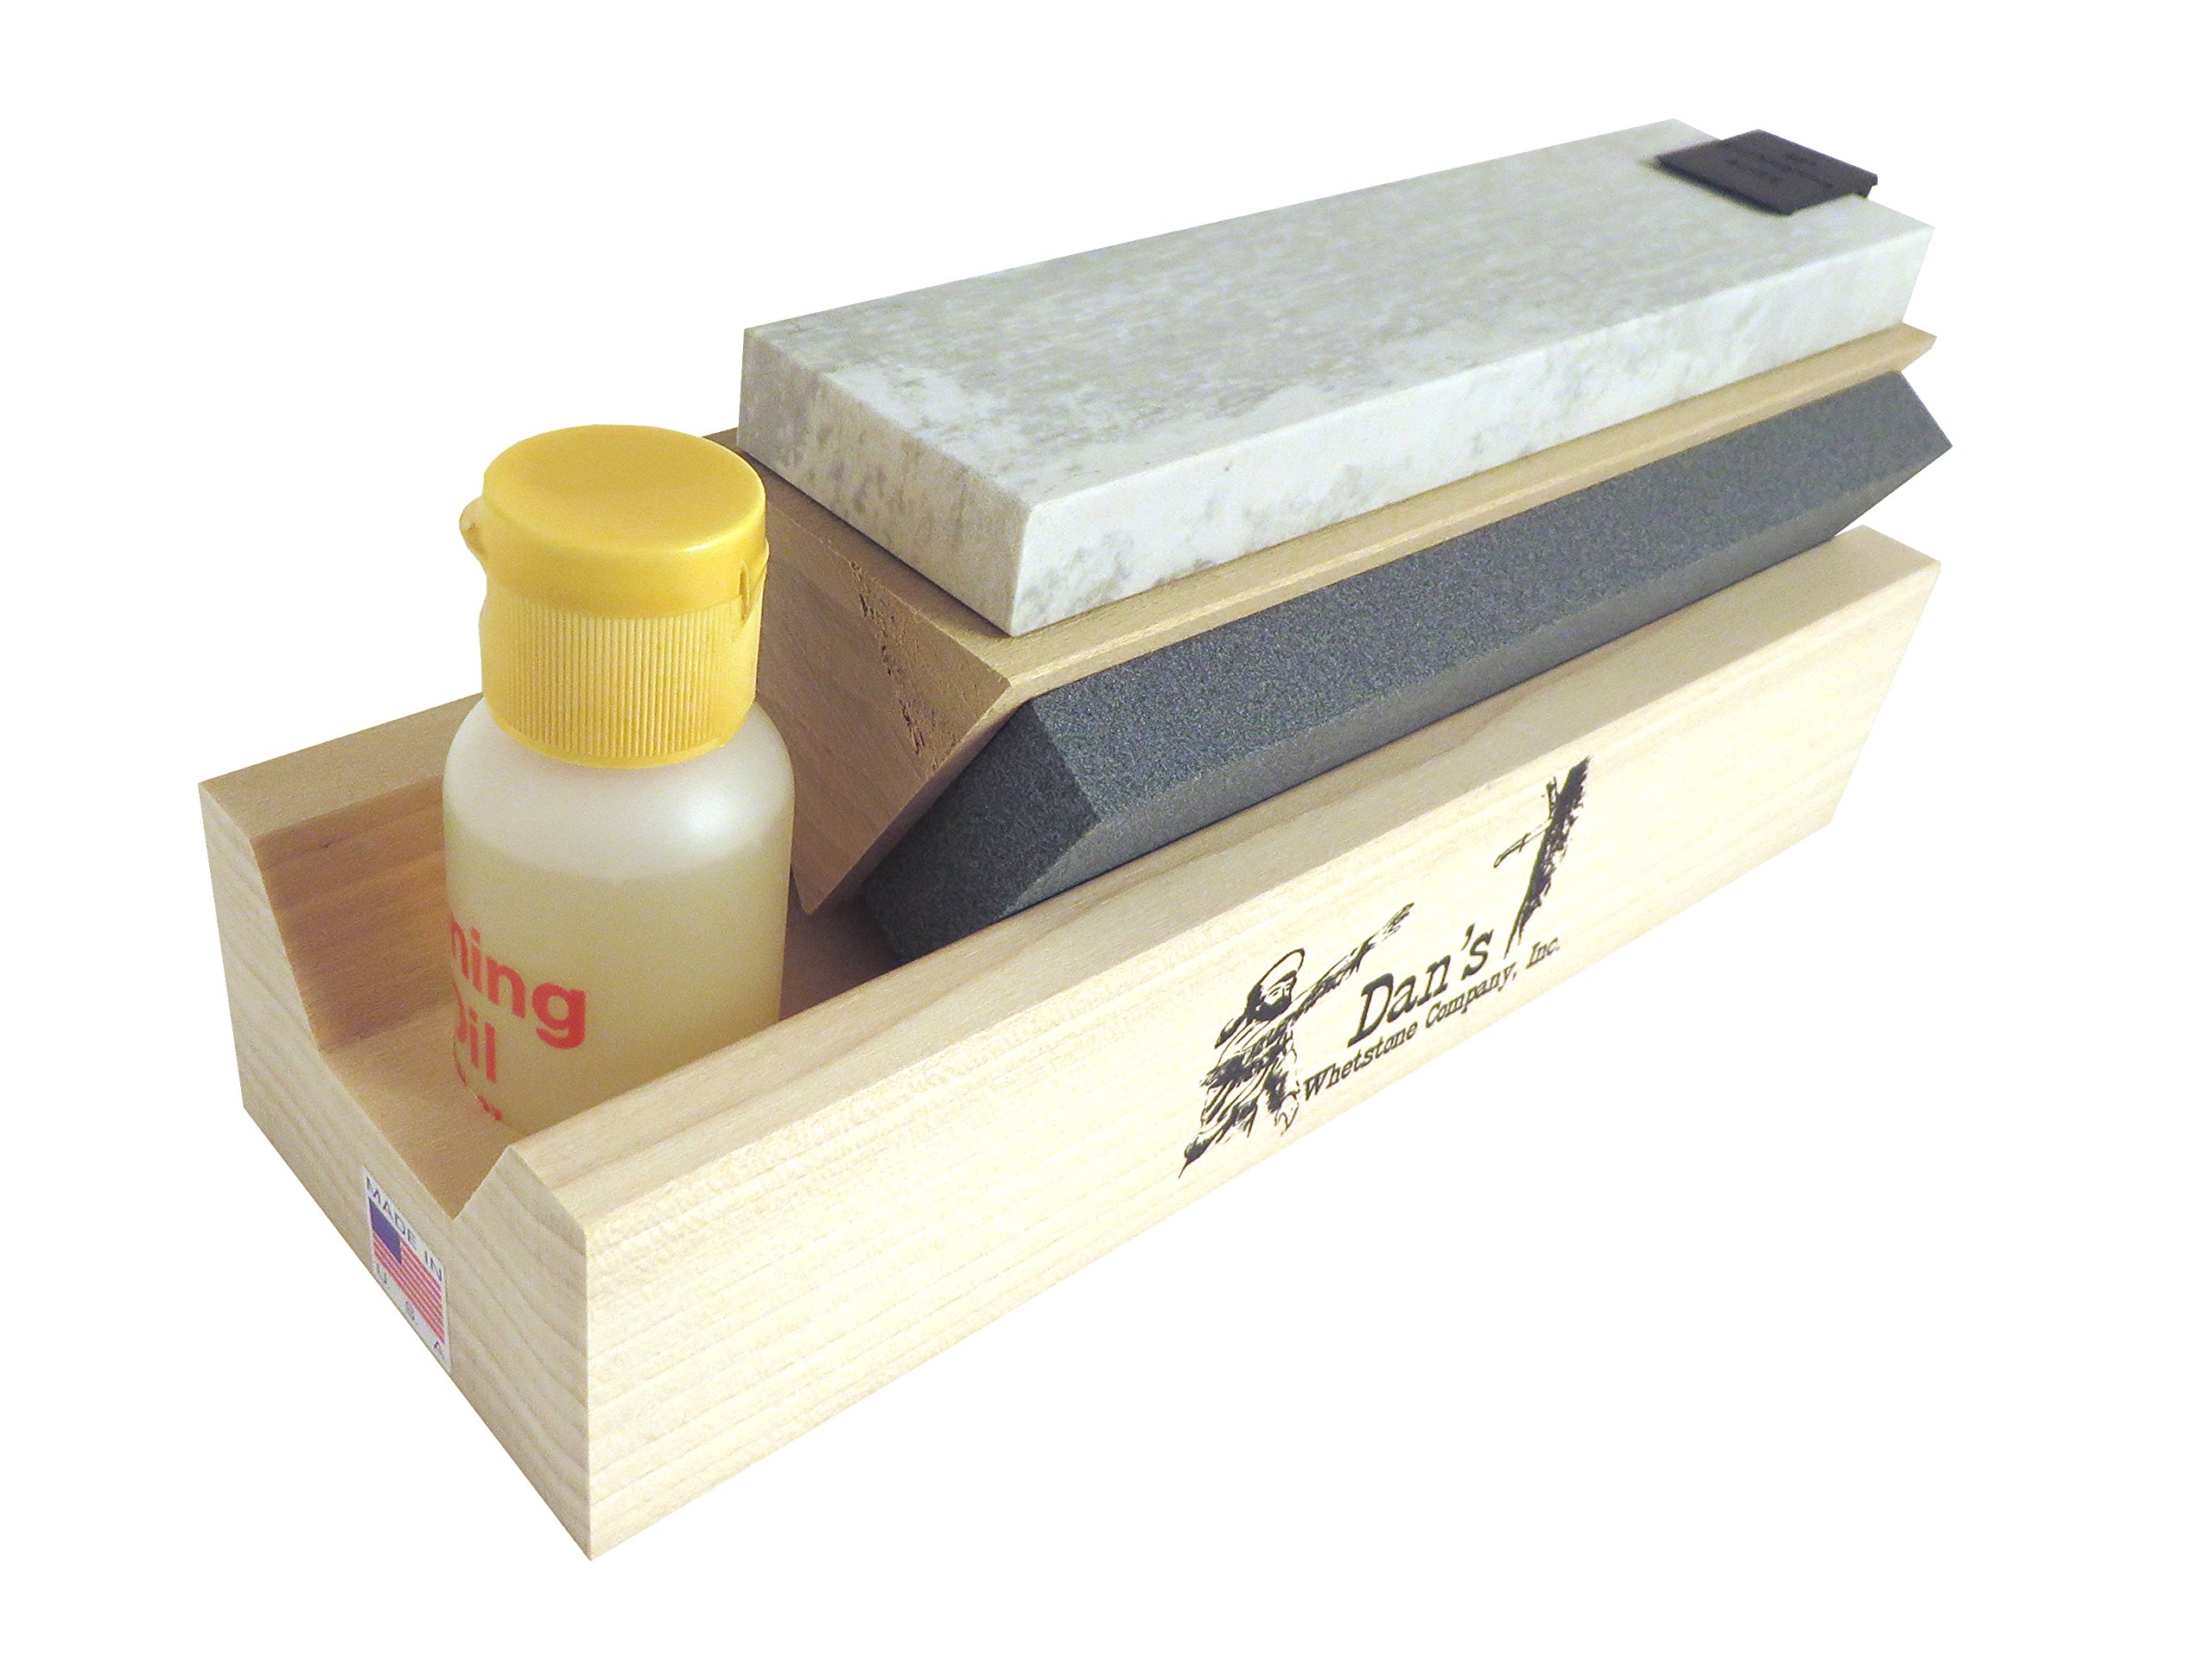 Genuine 3 Stone Arkansas 6'' Full Size Tri Hone Whetstone Knife Sharpening System with Silicon Carbide (Coarse), Soft (Medium) and Hard (Fine) Stones 6'' X 1'' X 1/4'' TRI-6